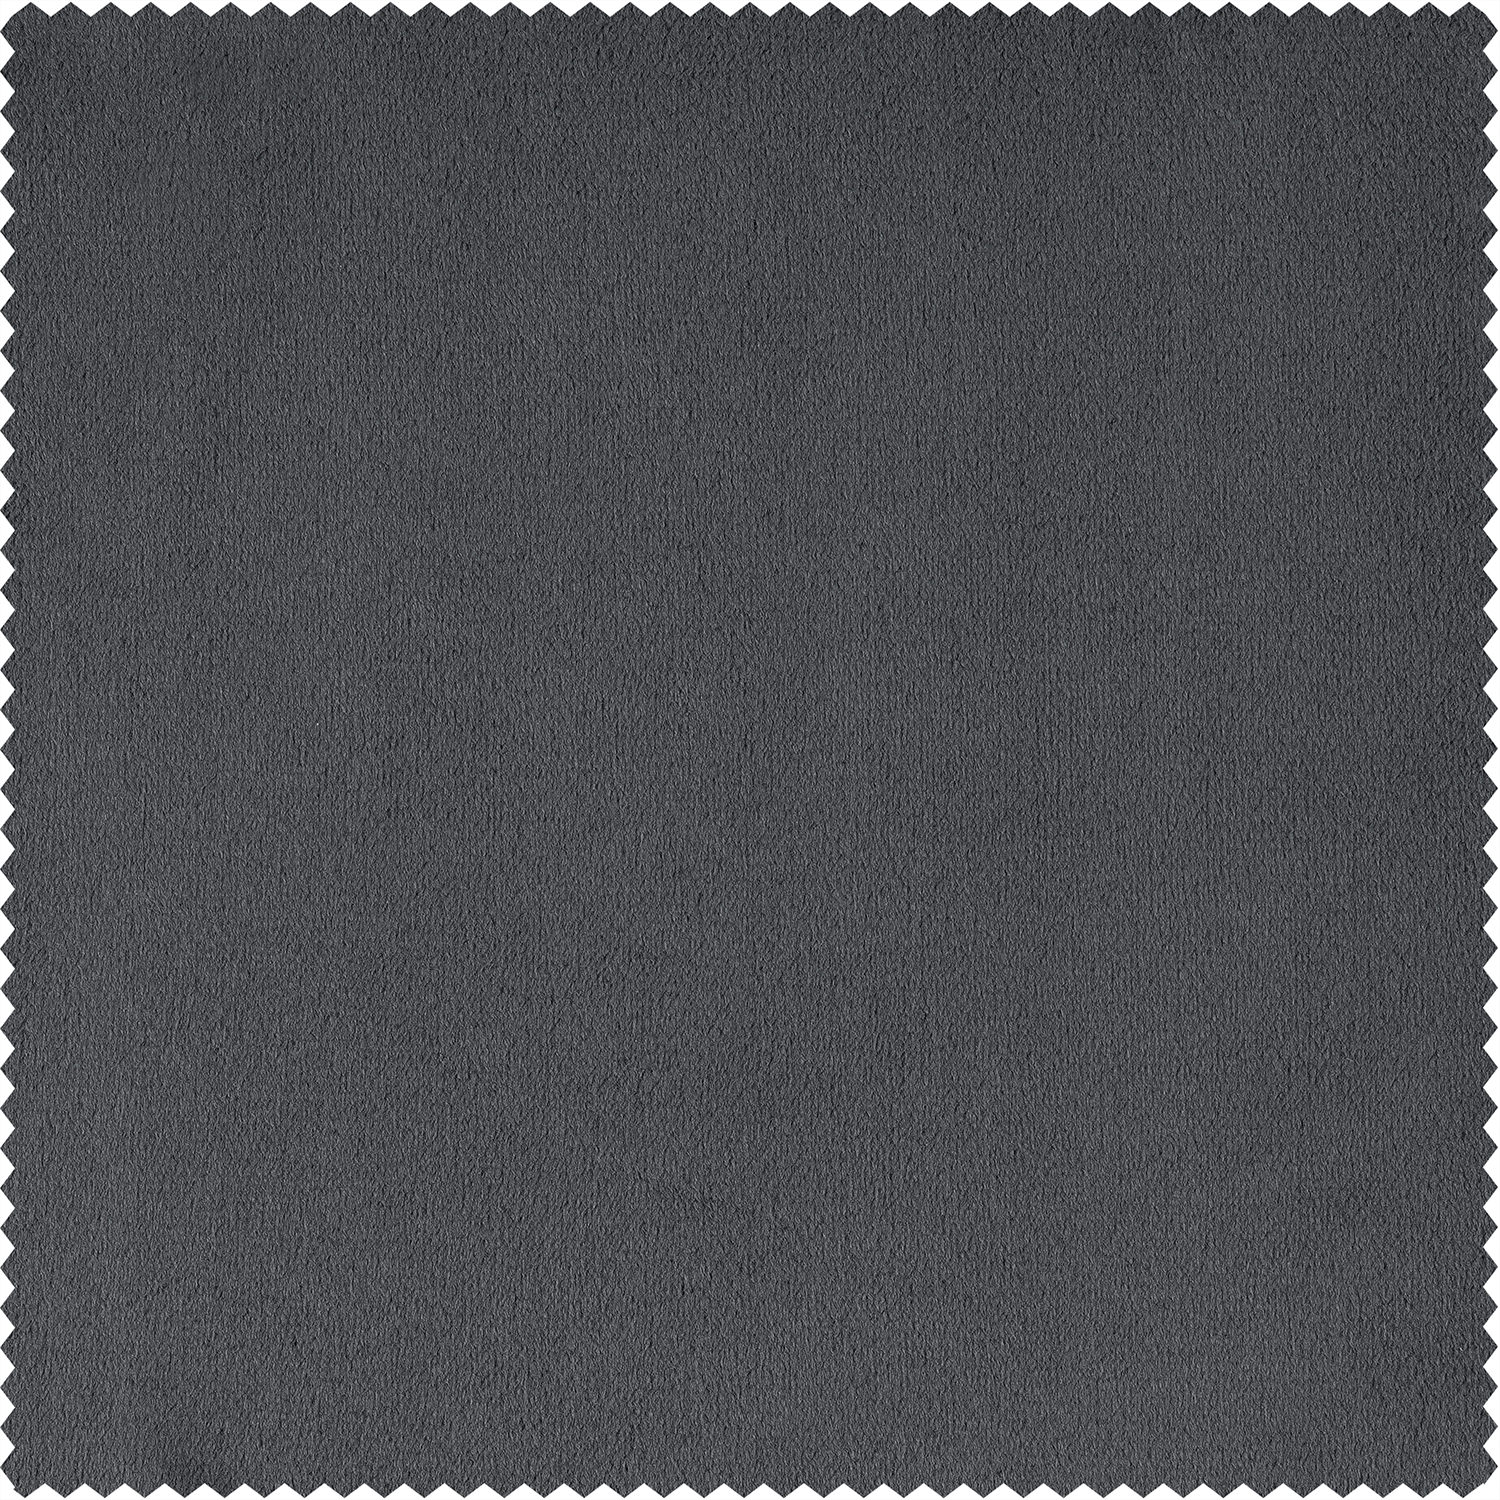 Signature Distance Blue Grey Blackout Velvet Swatch